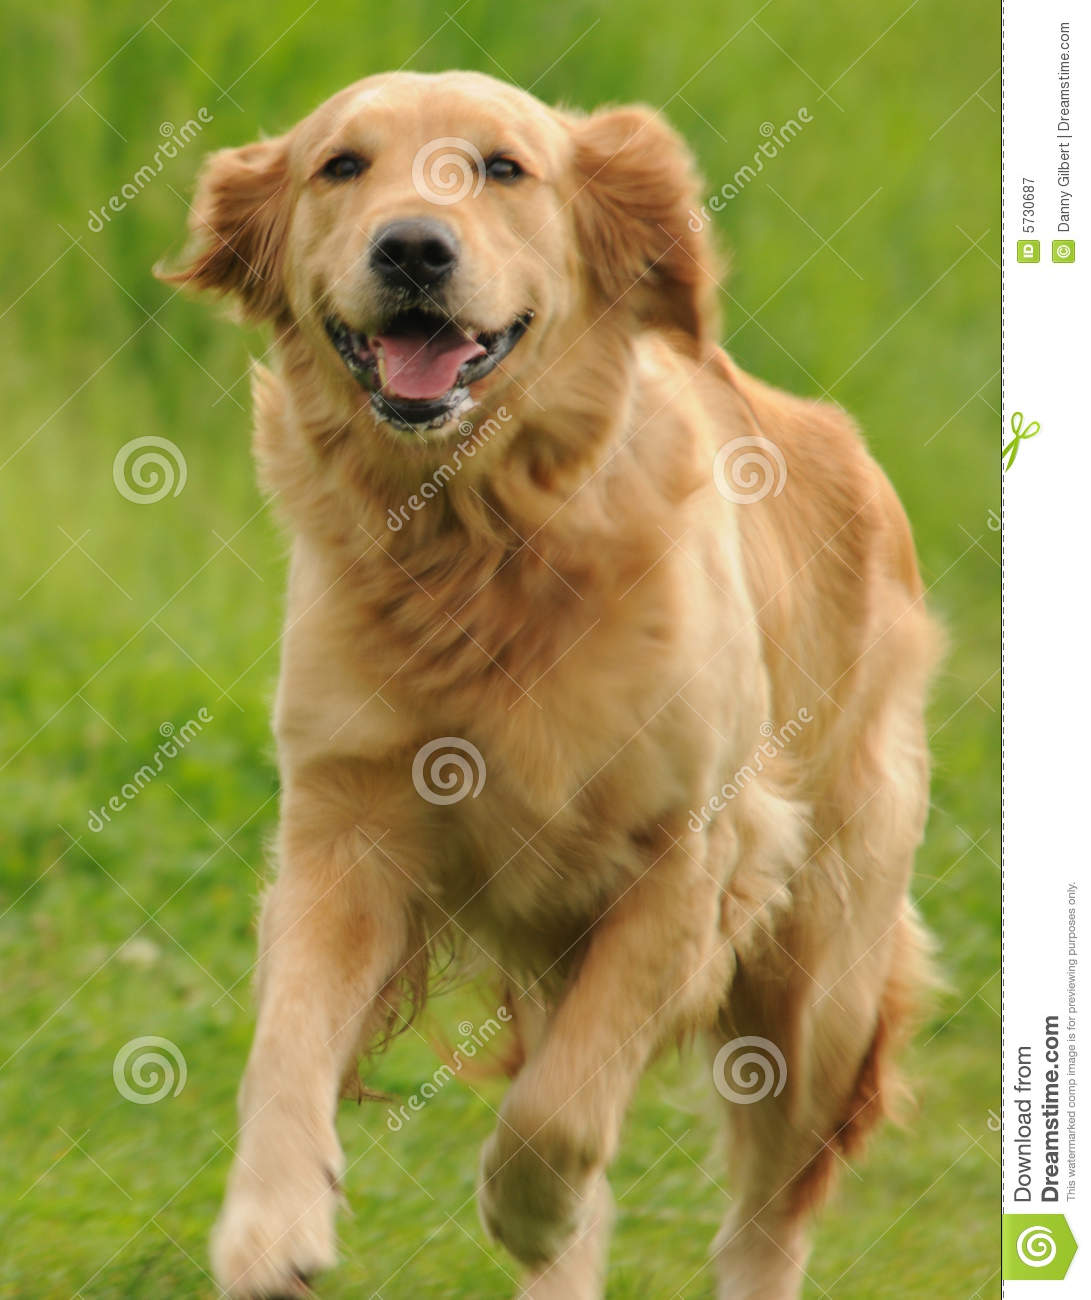 Happy Dog stock image. Image of retiever, grass, fast ... - photo#33